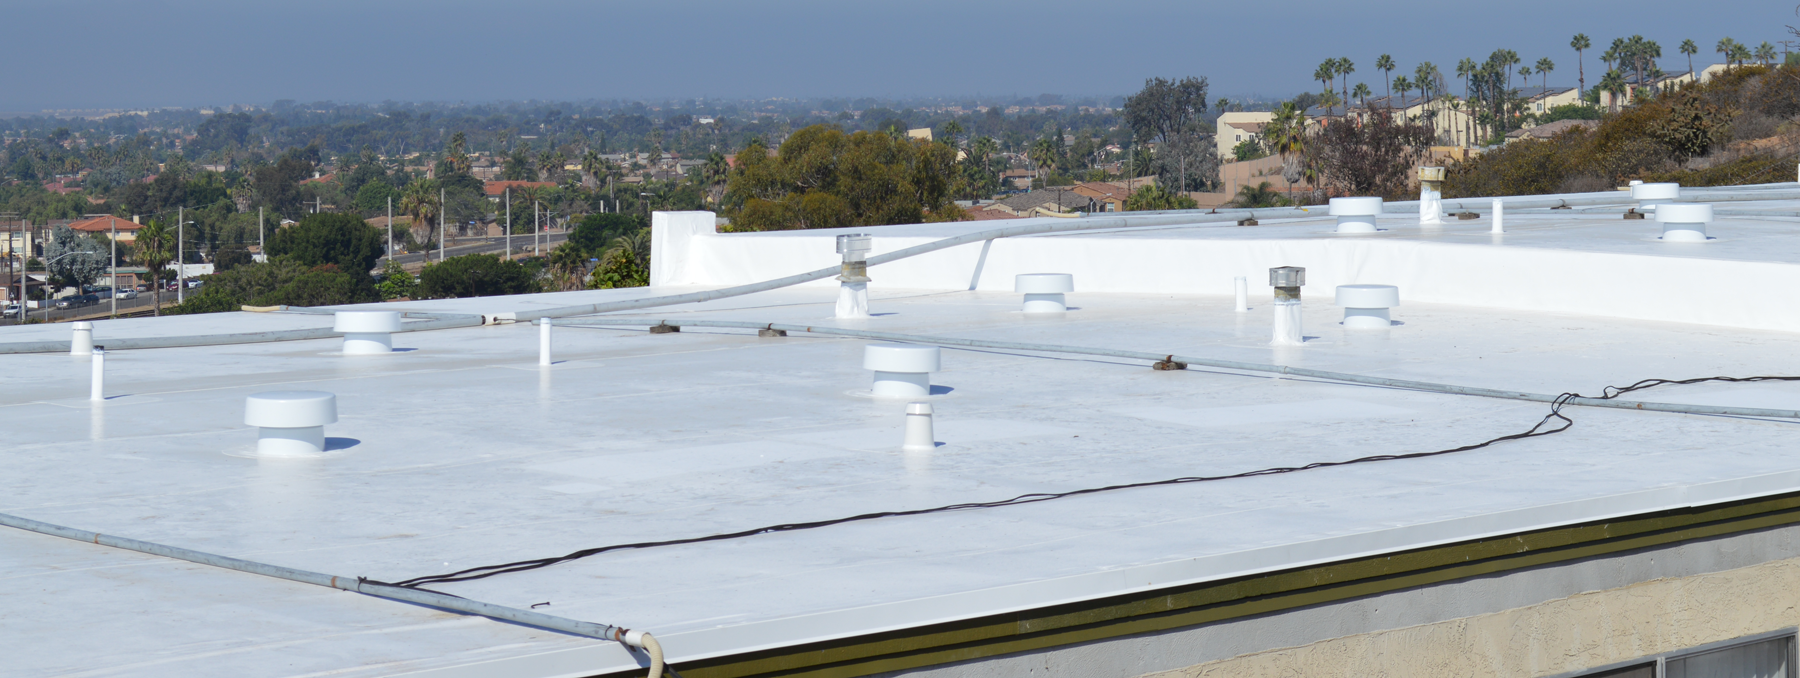 Commercial roofing with Cool Roof products